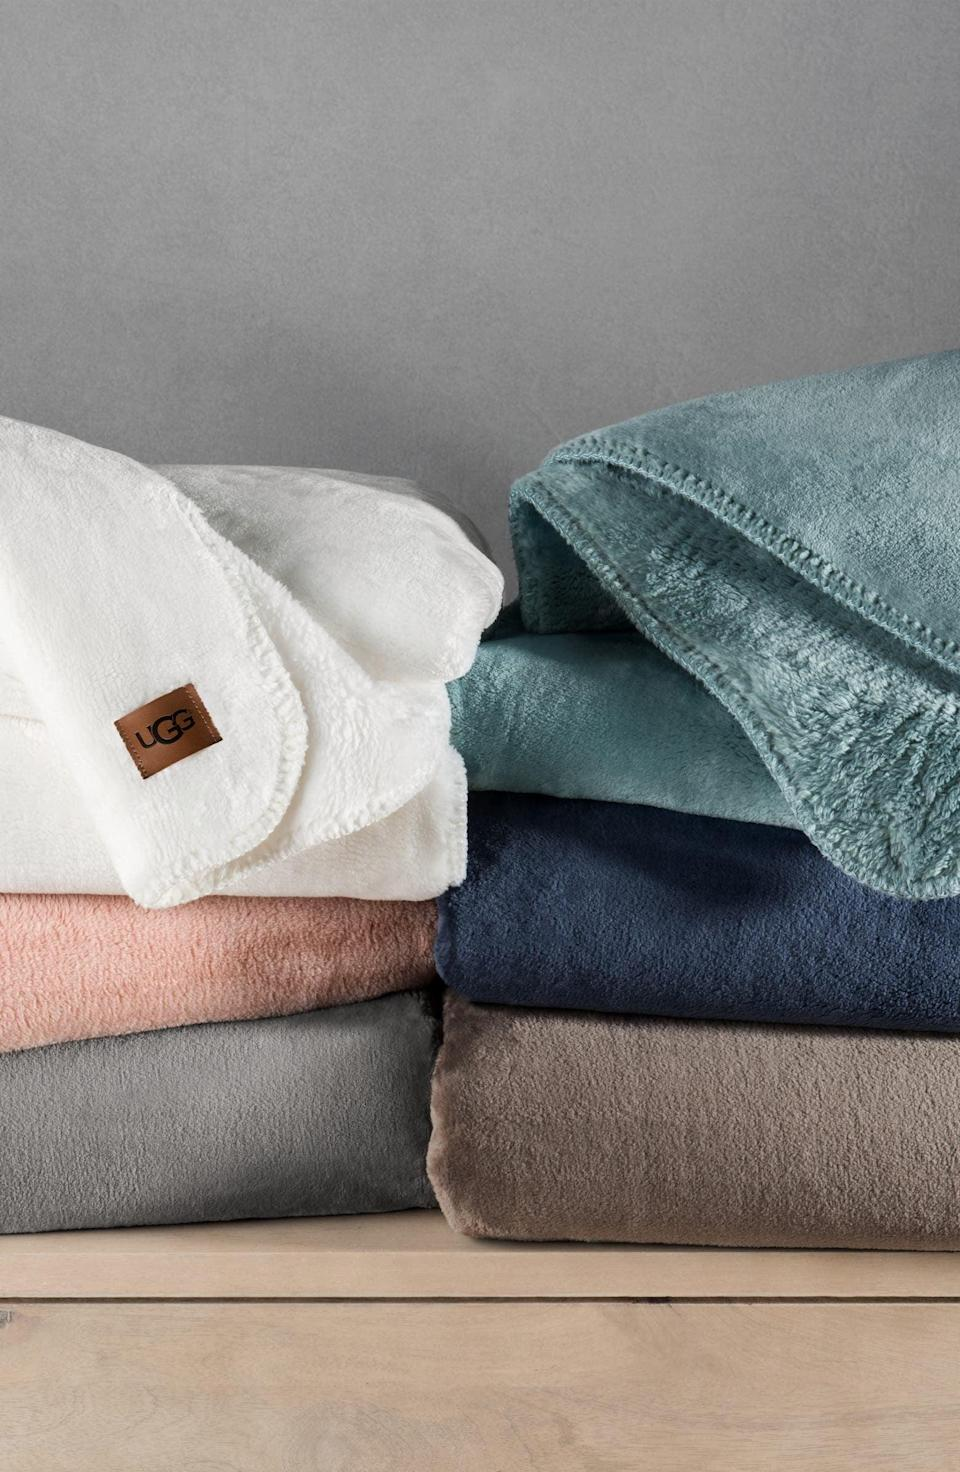 <p>The <span>Ugg Whistler Throw Blanket</span> ($98) is so freaking soft, they'll want to cocoon in it. It comes in a variety of colors, so you can get their favorite one.</p>